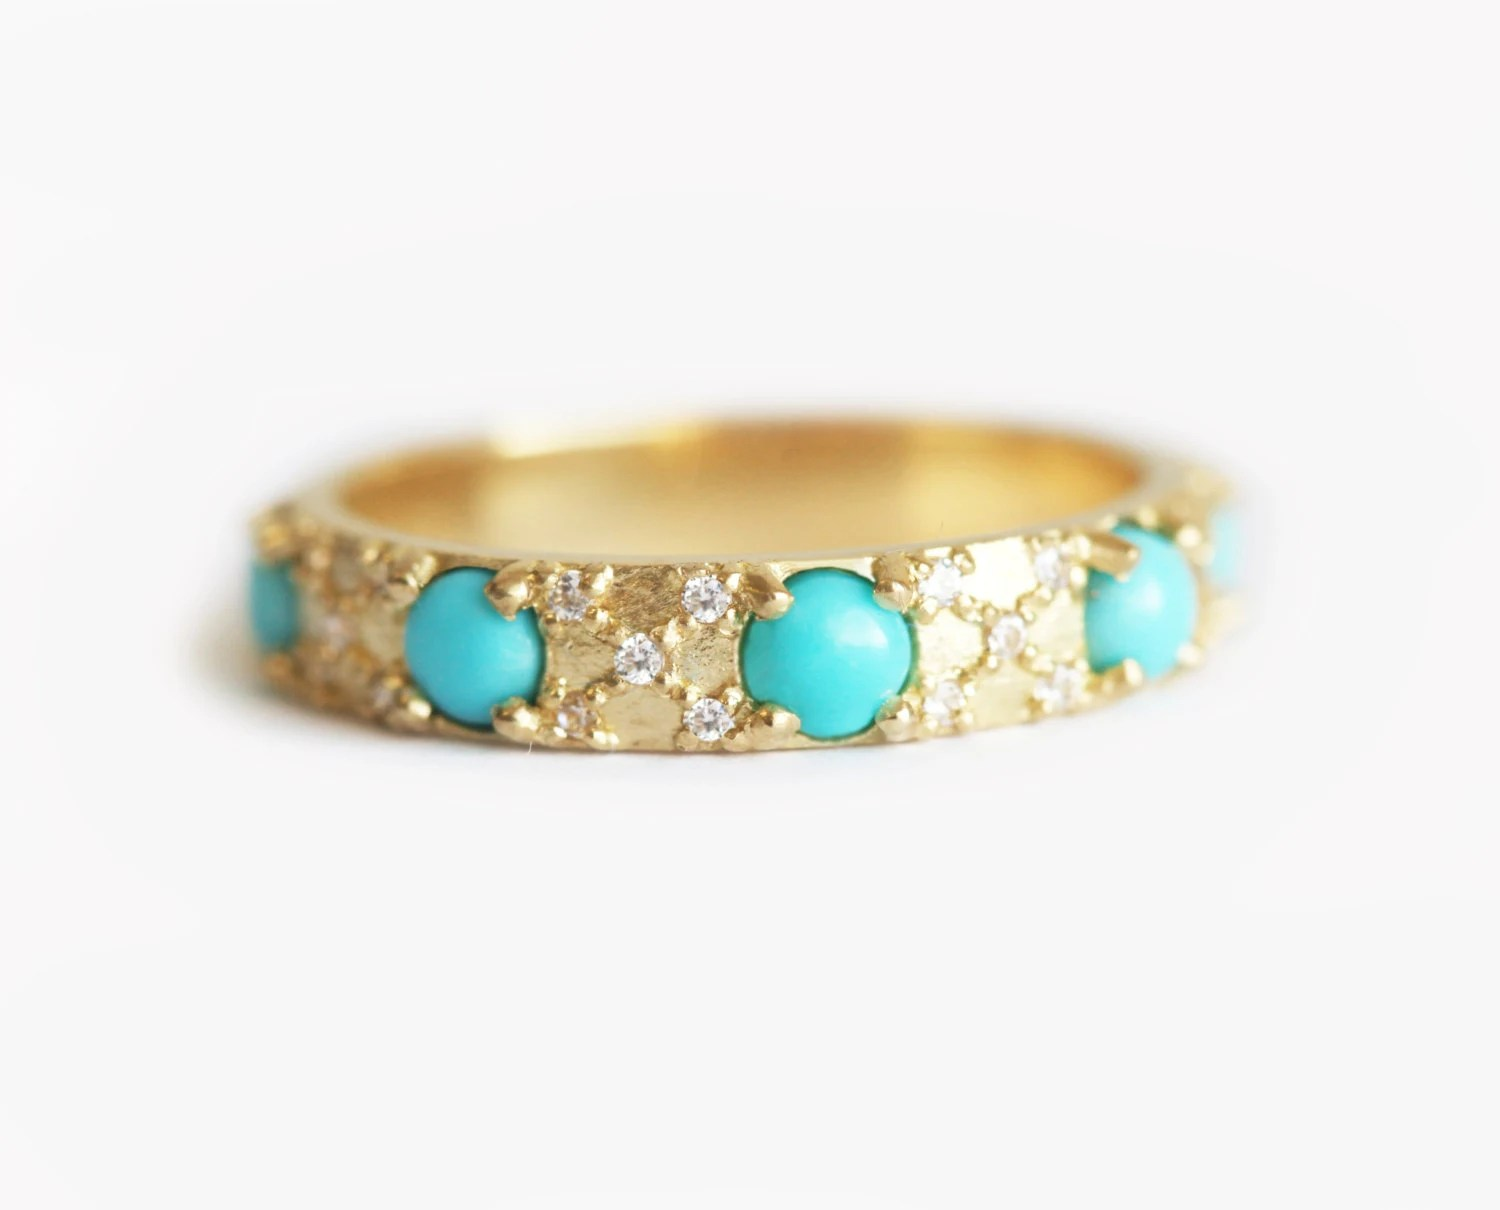 diamonds and turquoise wedding ring turquoise wedding ring Turquoise Diamond Ring Turquoise zoom